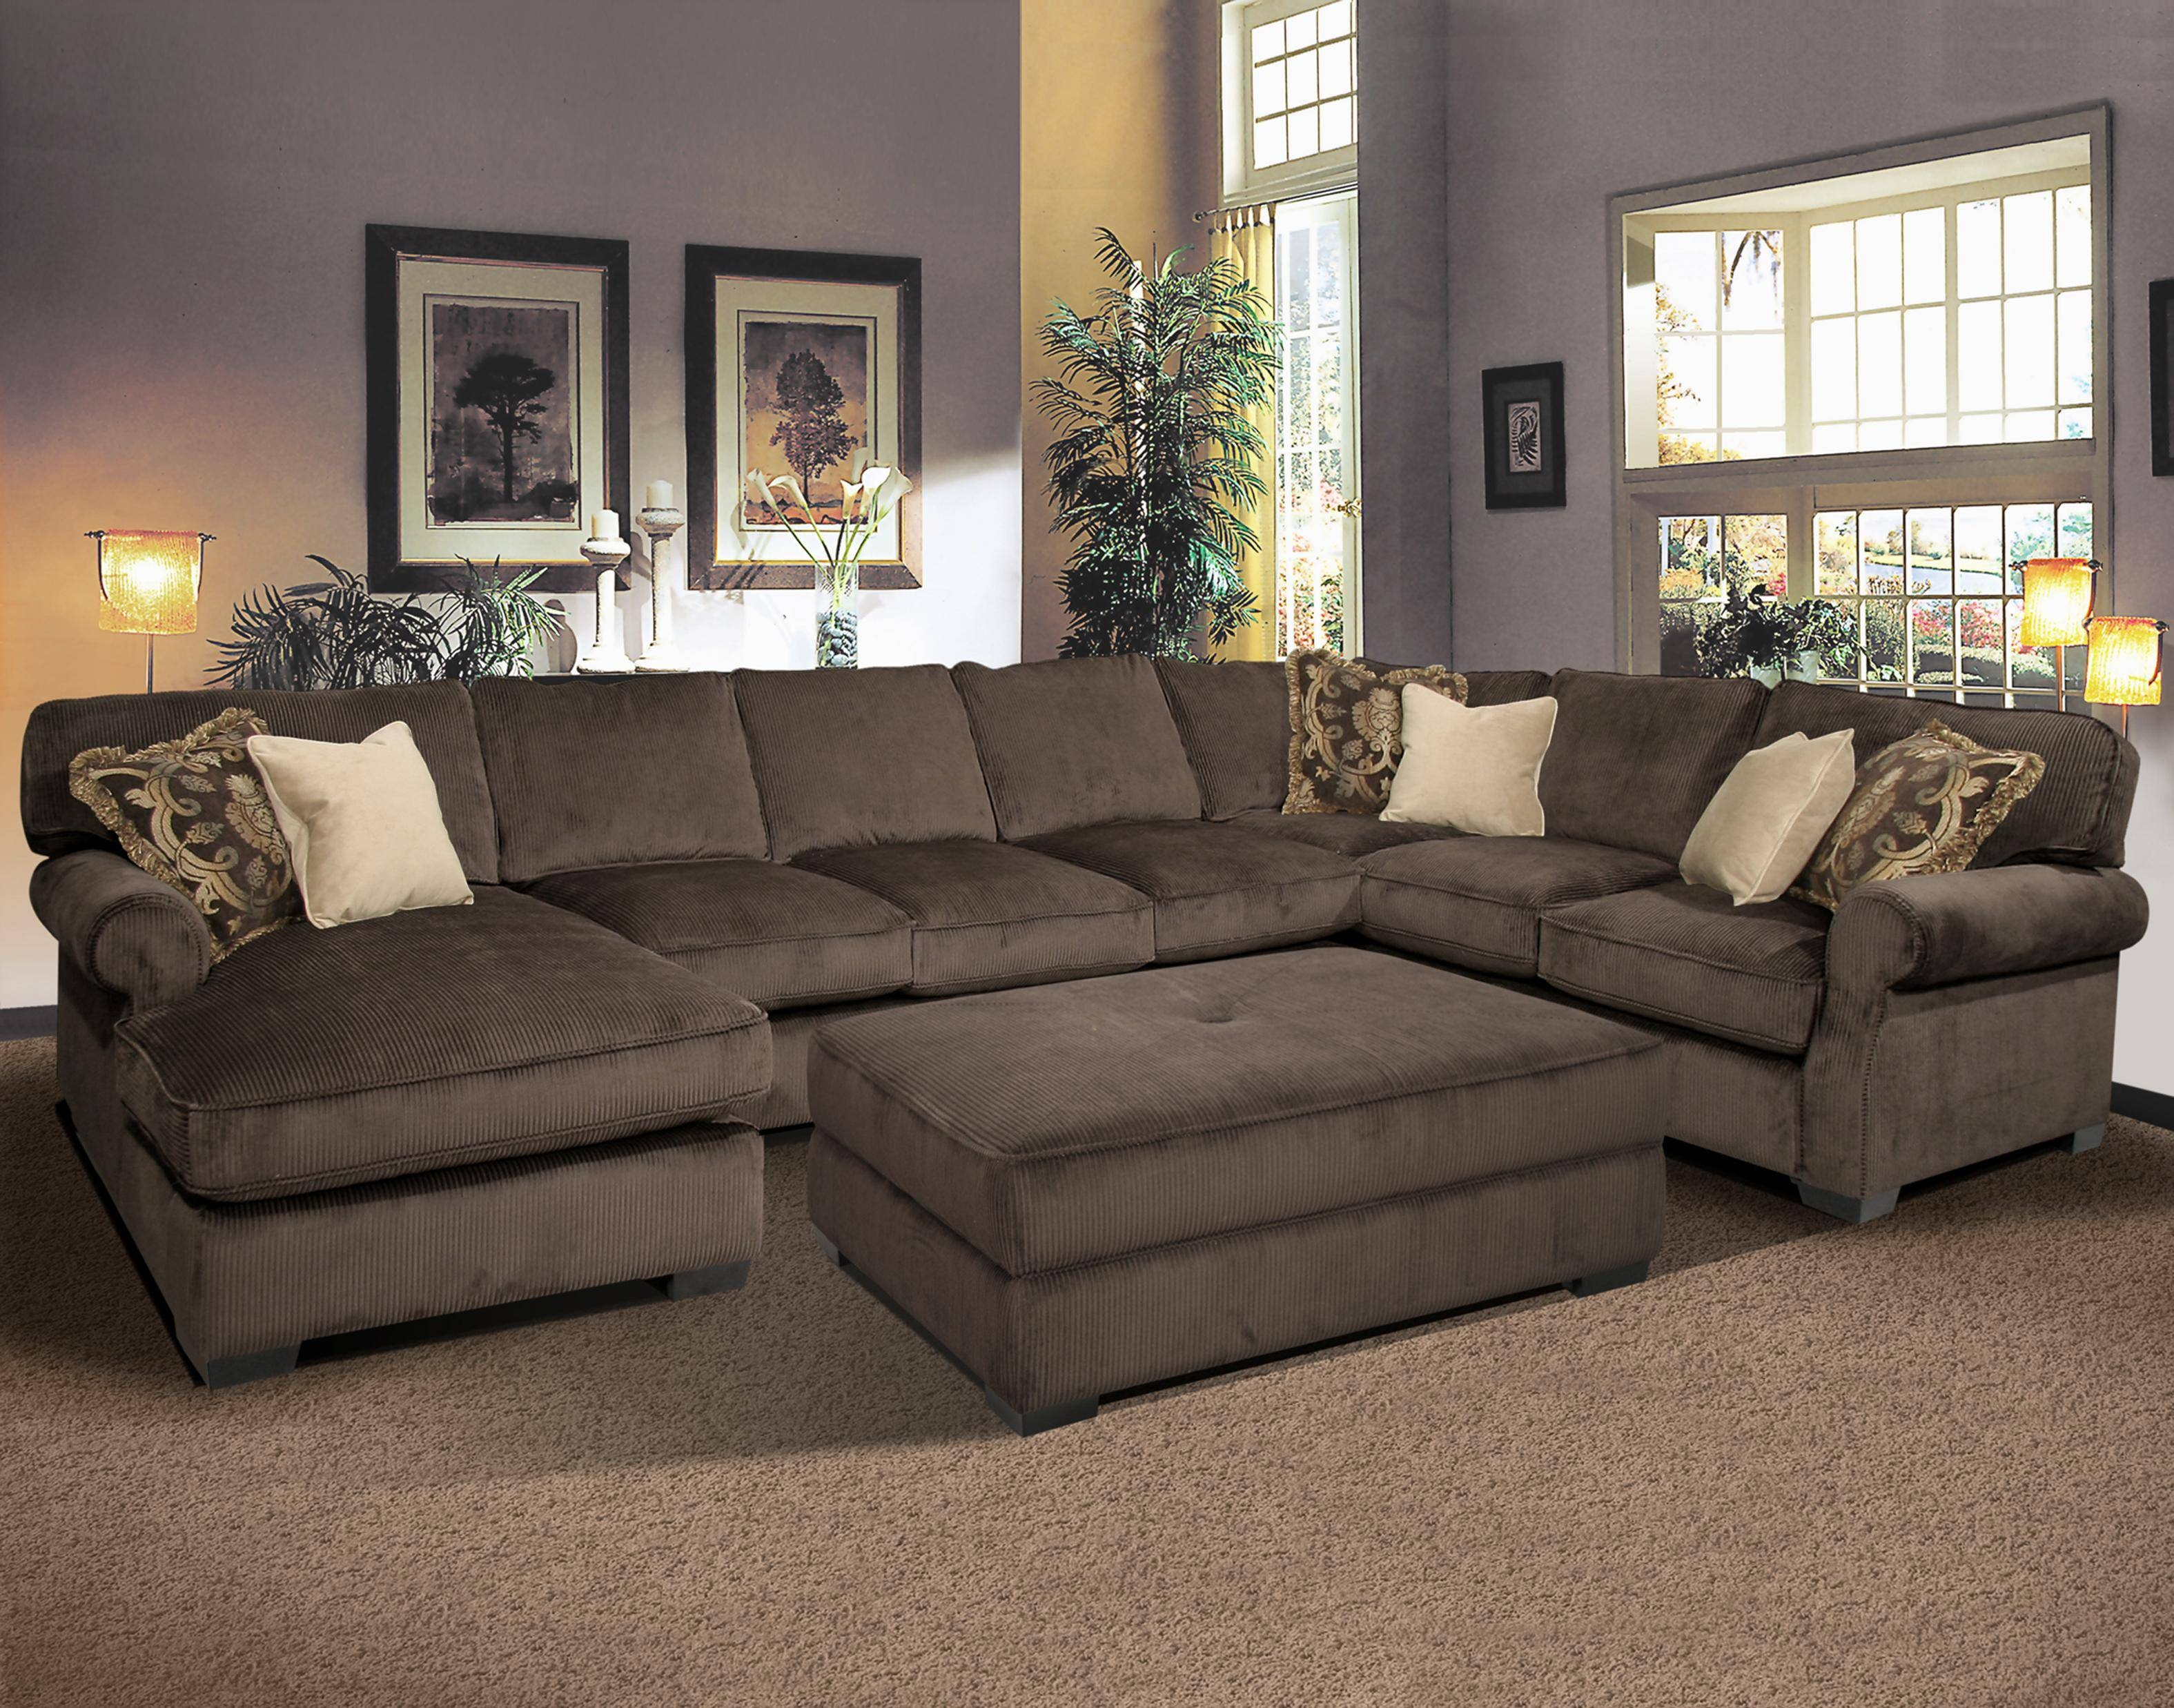 Awesome Sectional Sofa With Recliner And Chaise Lounge 45 With in Queen Sleeper Sofa Sheets ( : queen sleeper sofa sectional - Sectionals, Sofas & Couches